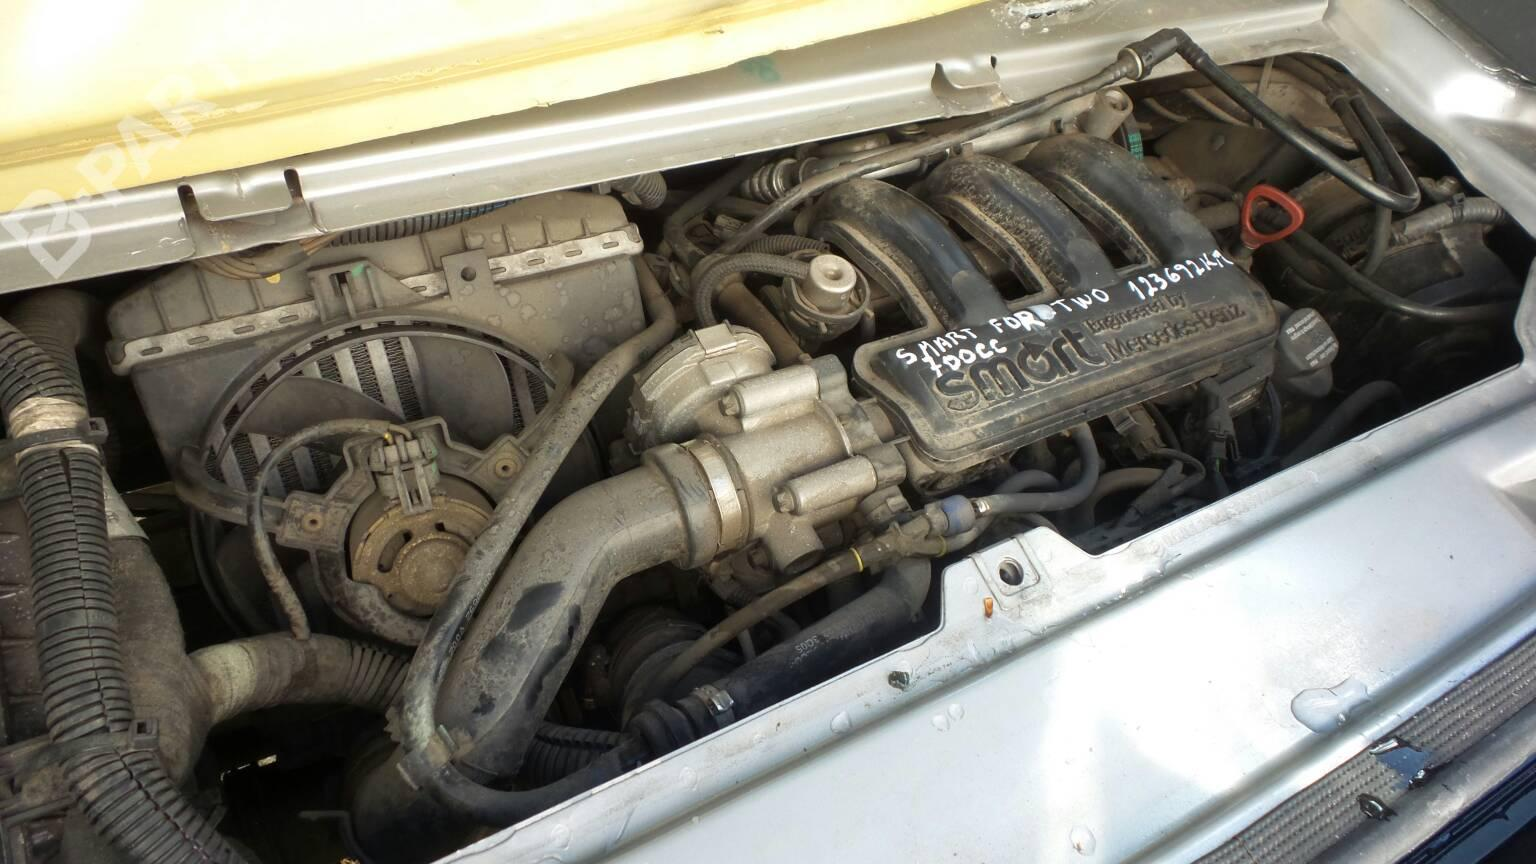 Smart Car Engine >> Engine Smart Fortwo Coupe 450 0 7 450 333 B Parts